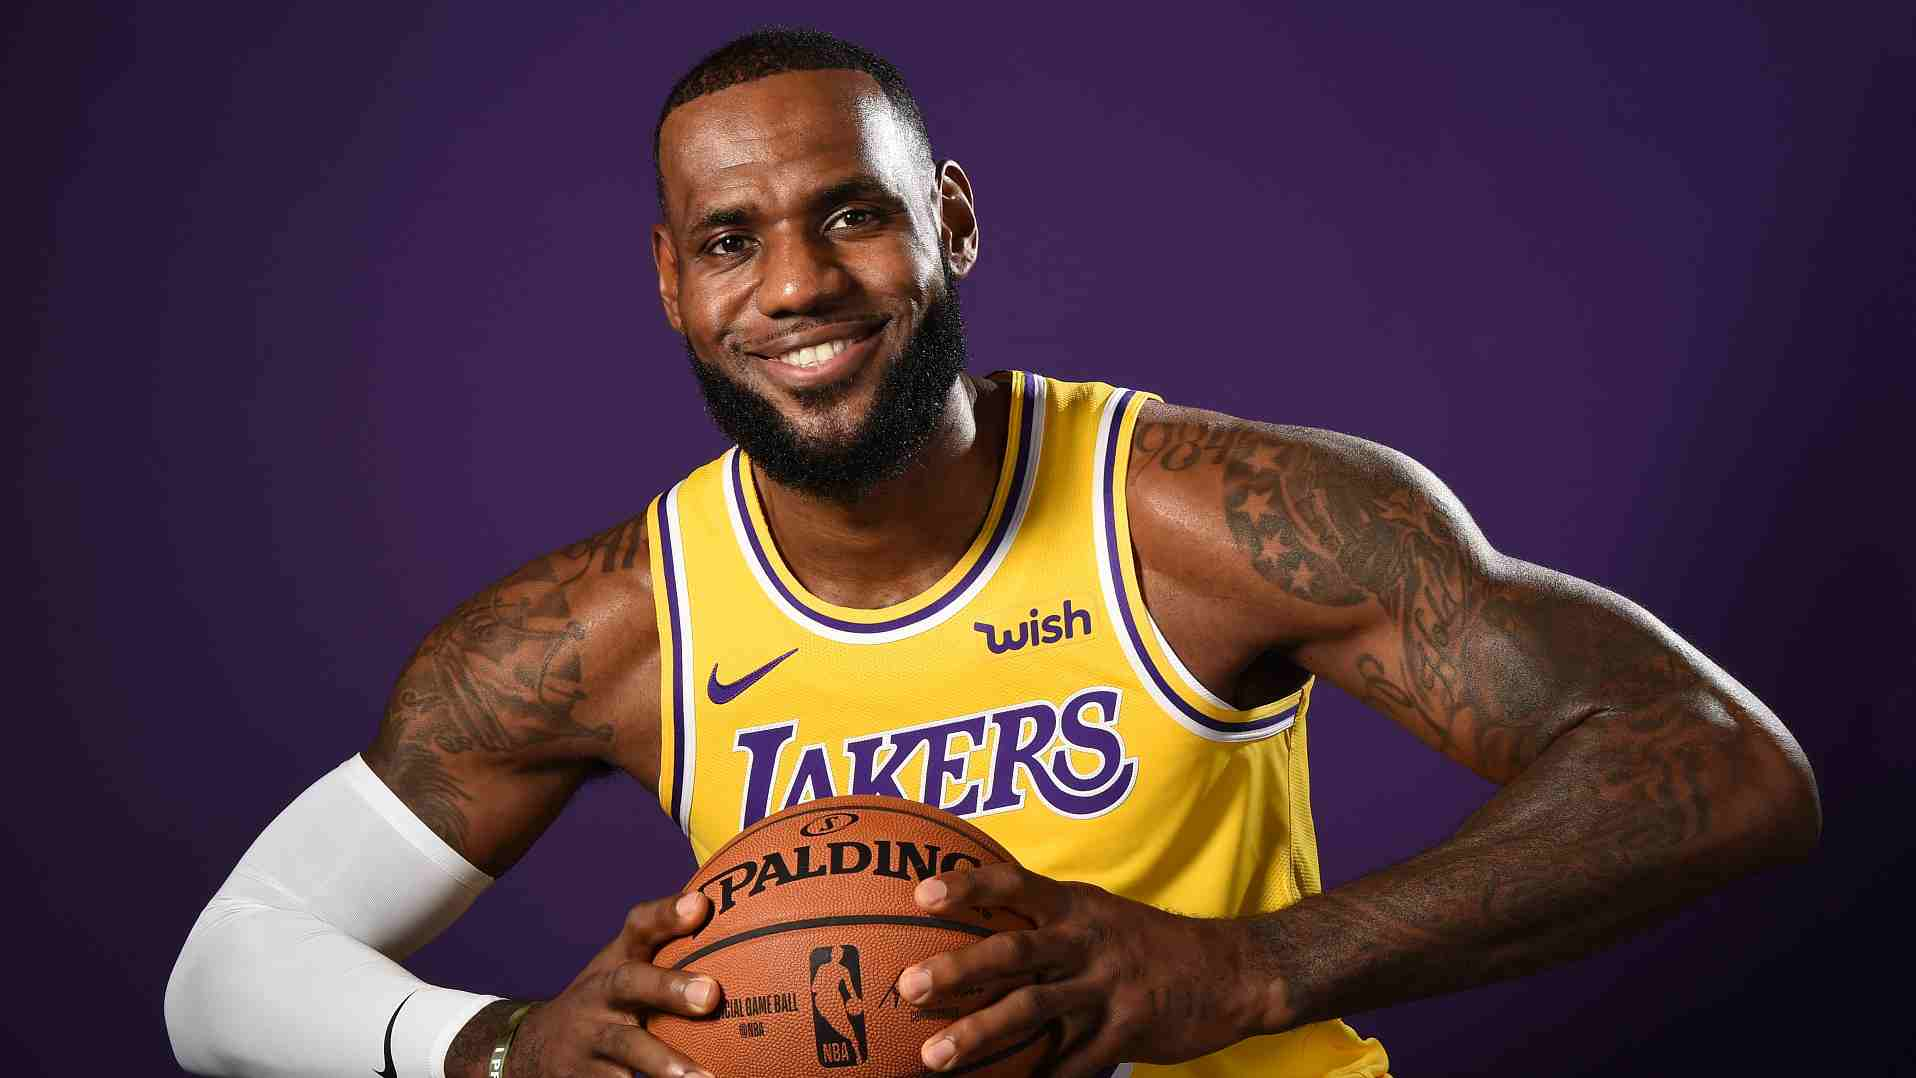 84a38205ac3 LeBron warns 'long way' before Lakers challenge Golden State Warriors